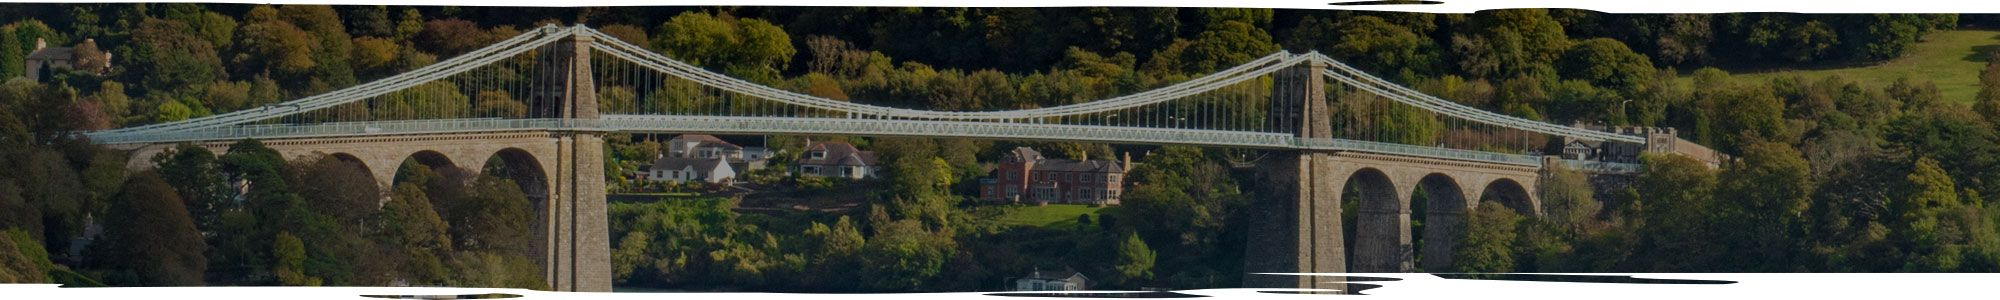 Menai Bridge, Isle of Anglesey